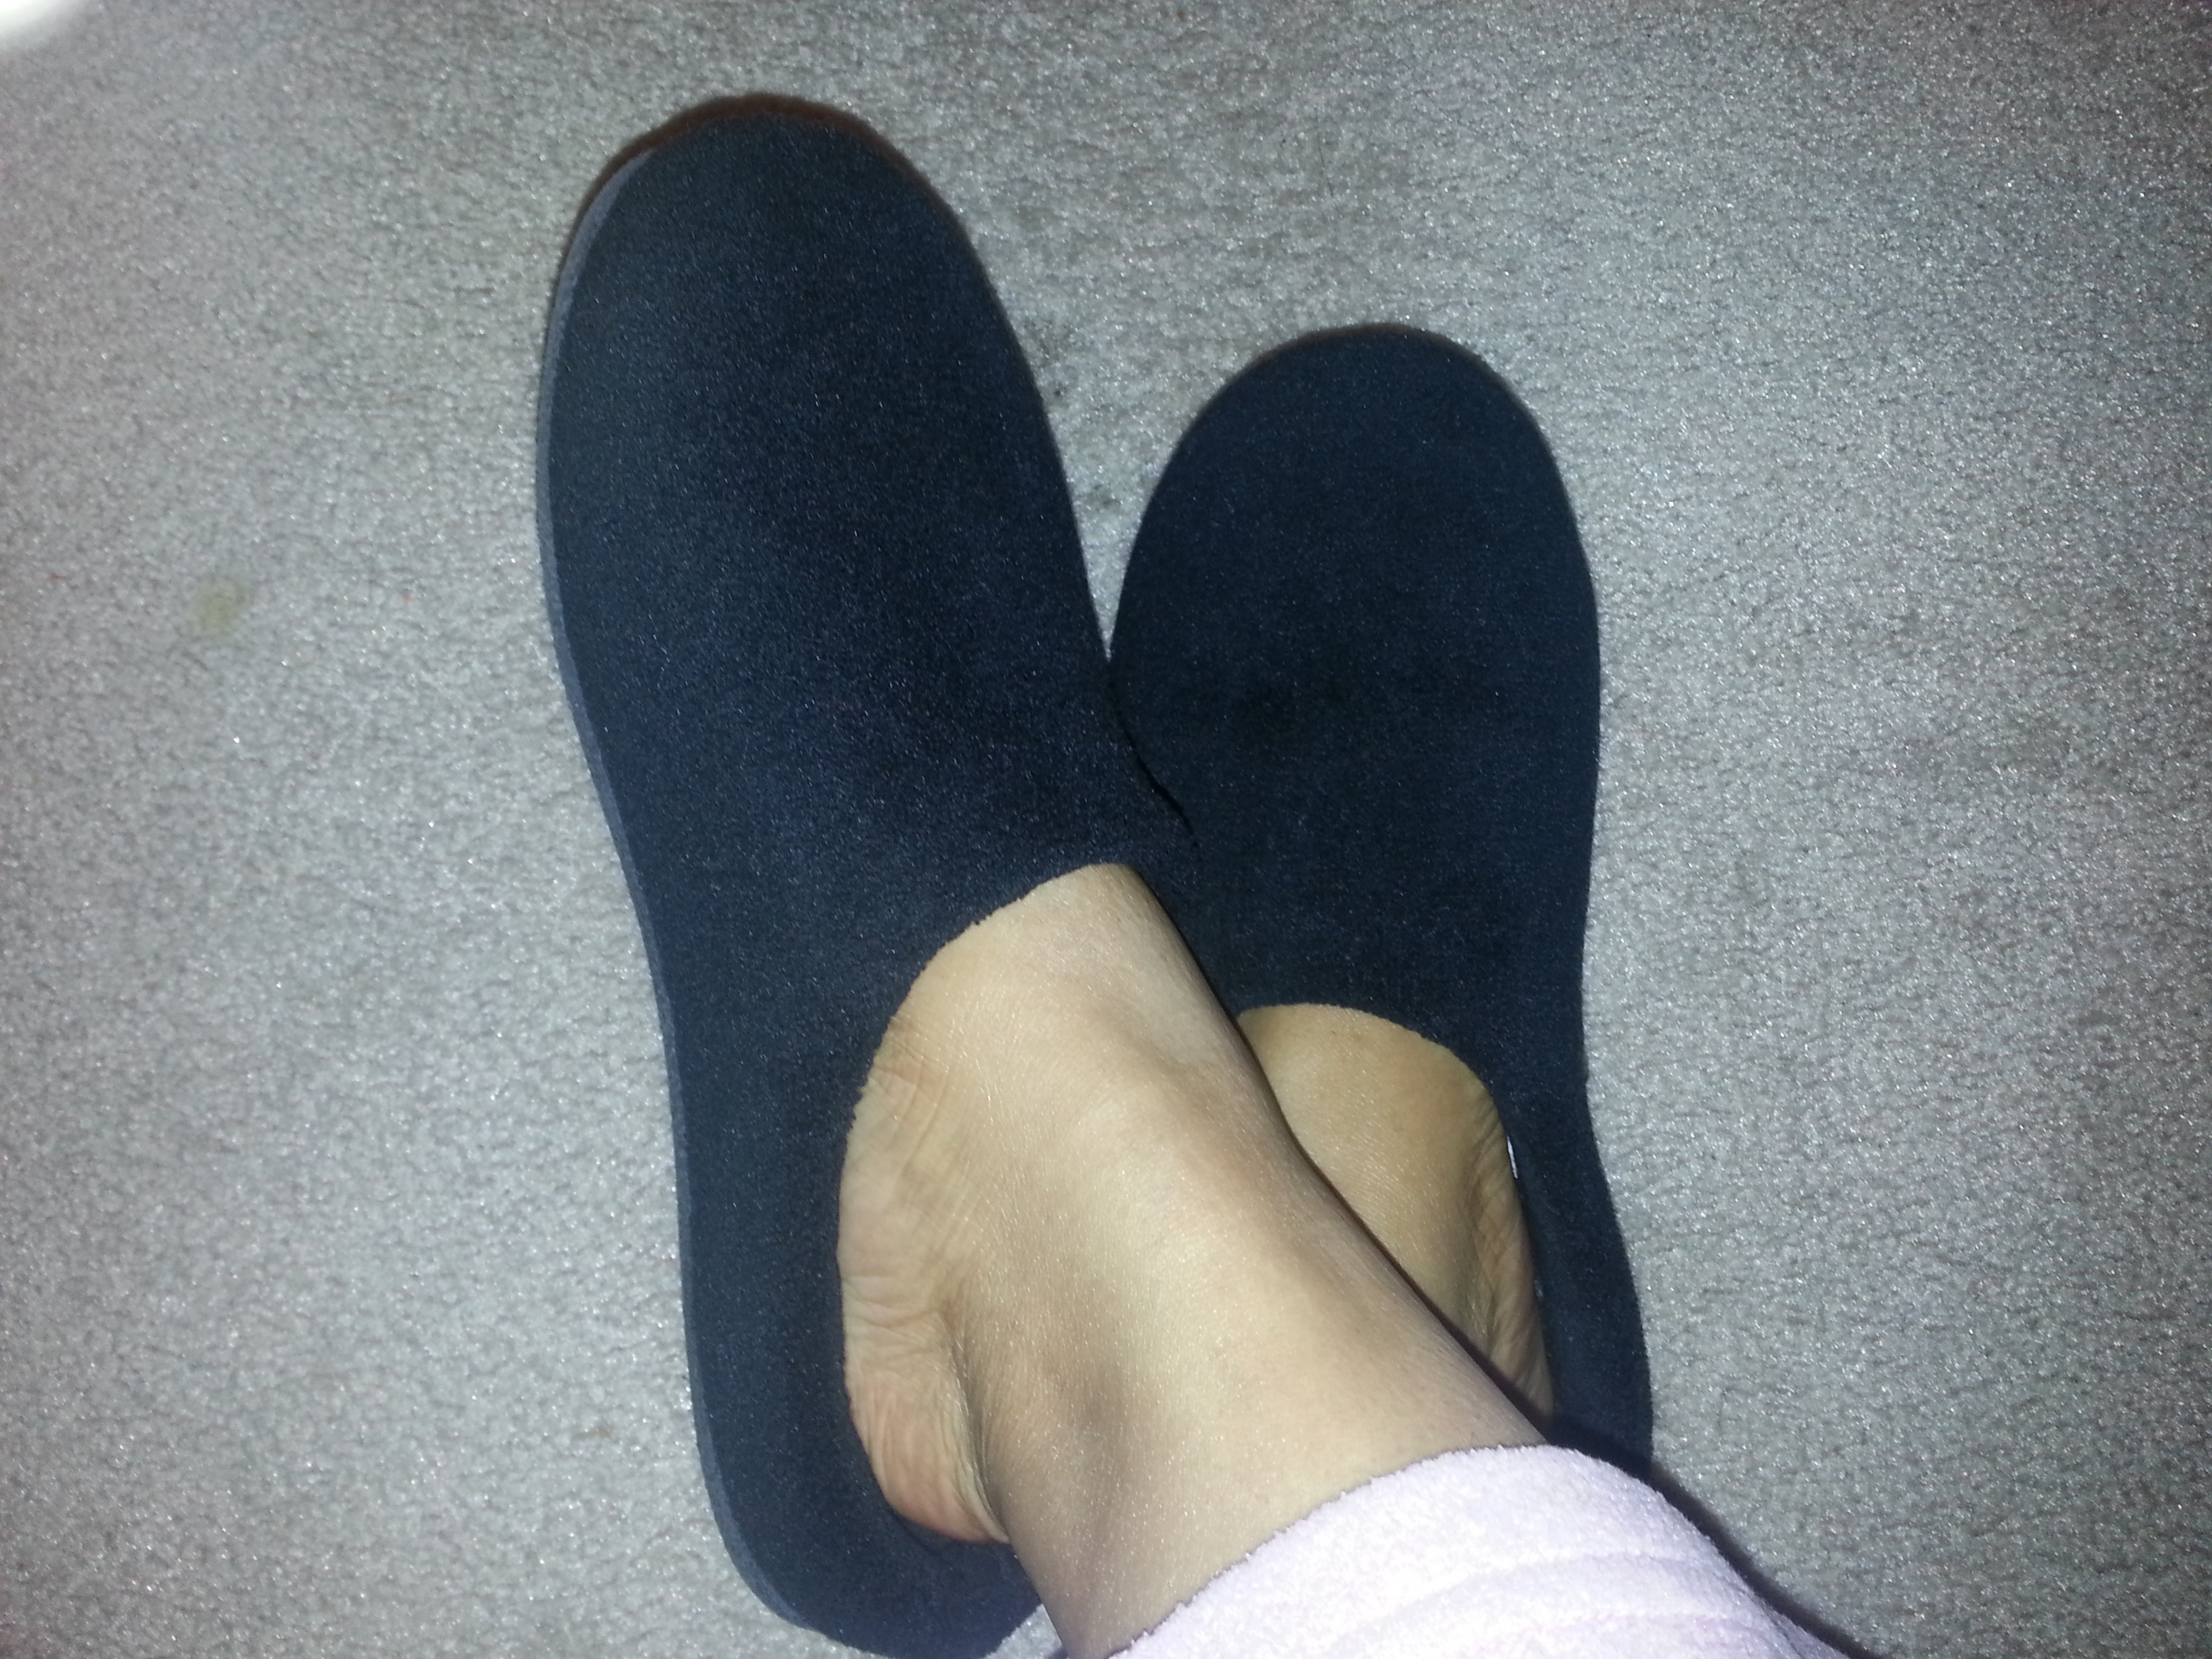 Keeping Warm While Home in Winter in Toasty Slippers